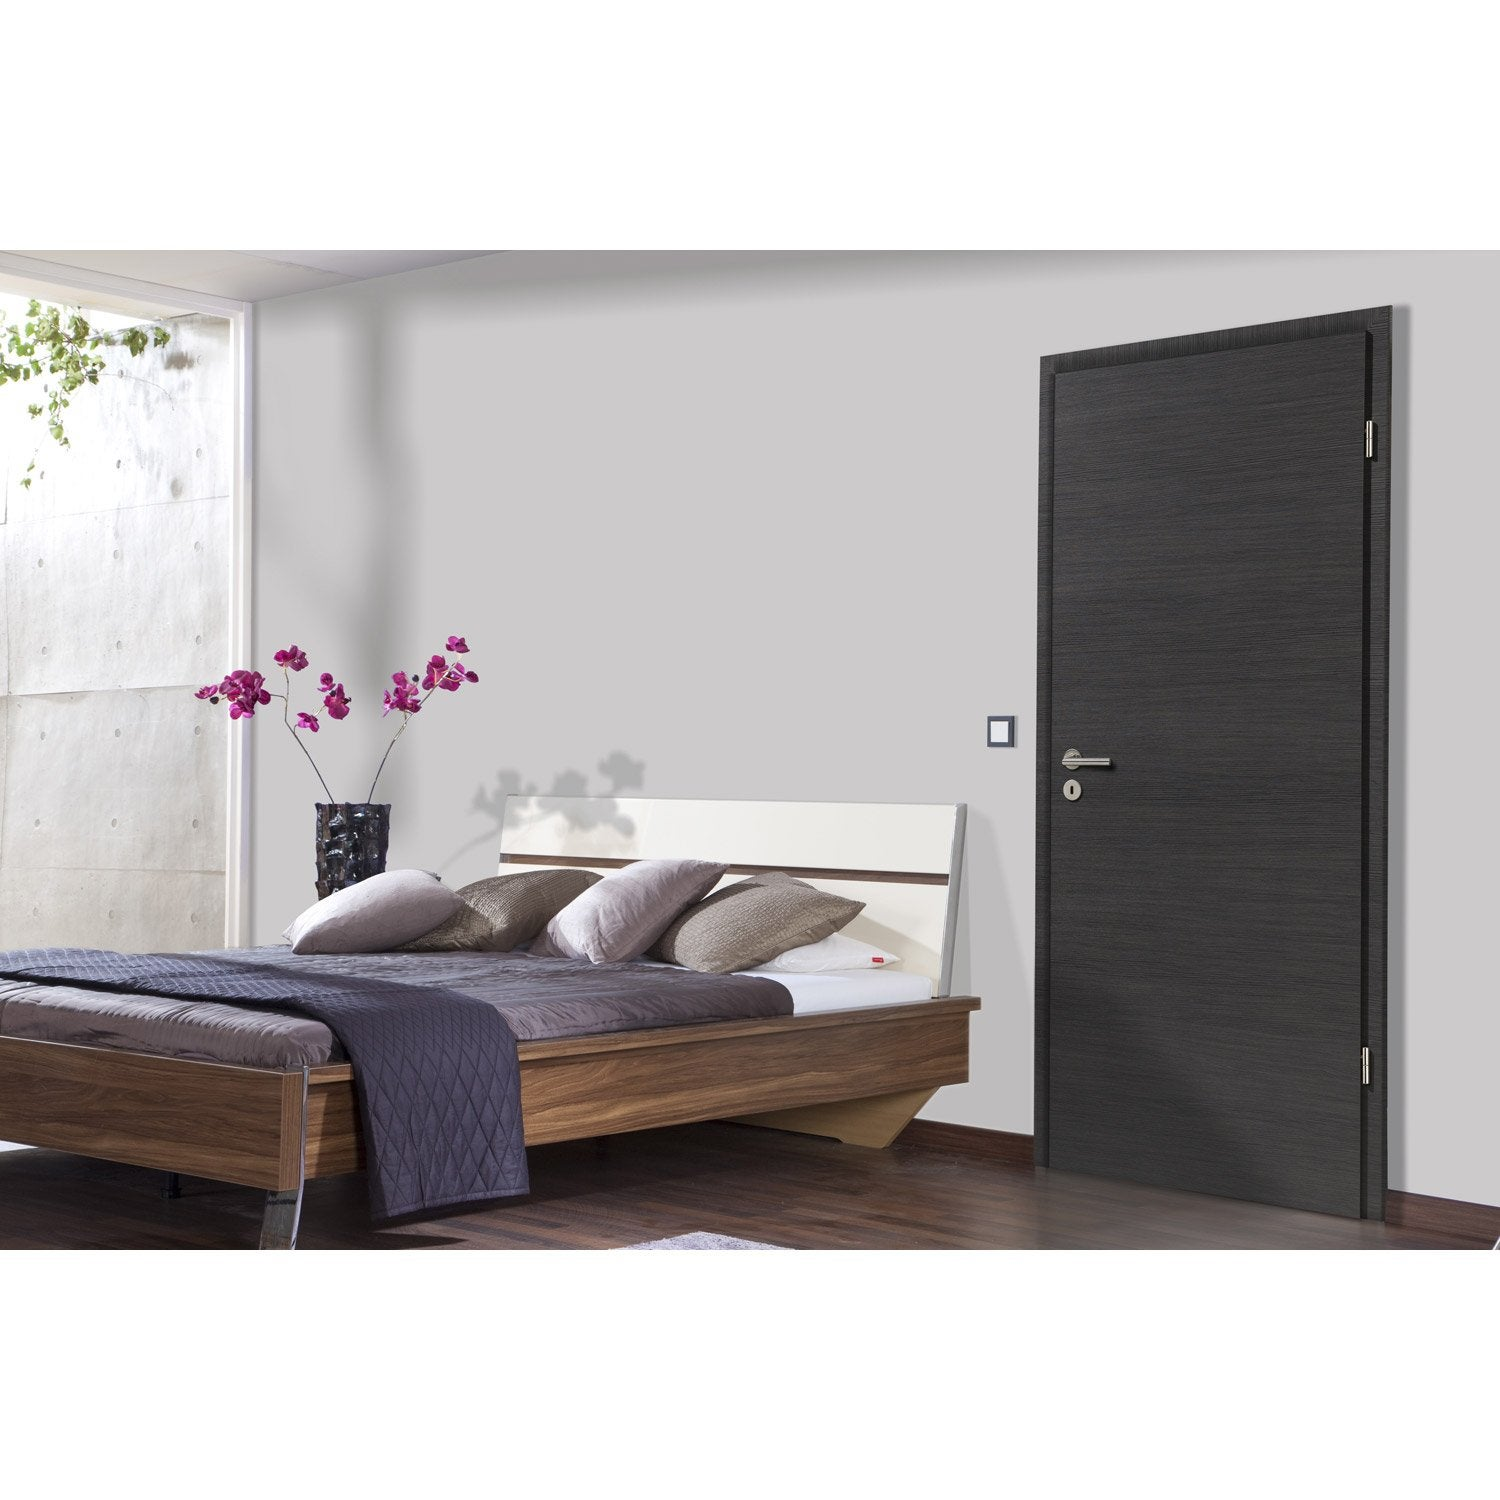 bloc porte m dium mdf rev tu d cor ch ne gris londres x cm leroy merlin. Black Bedroom Furniture Sets. Home Design Ideas